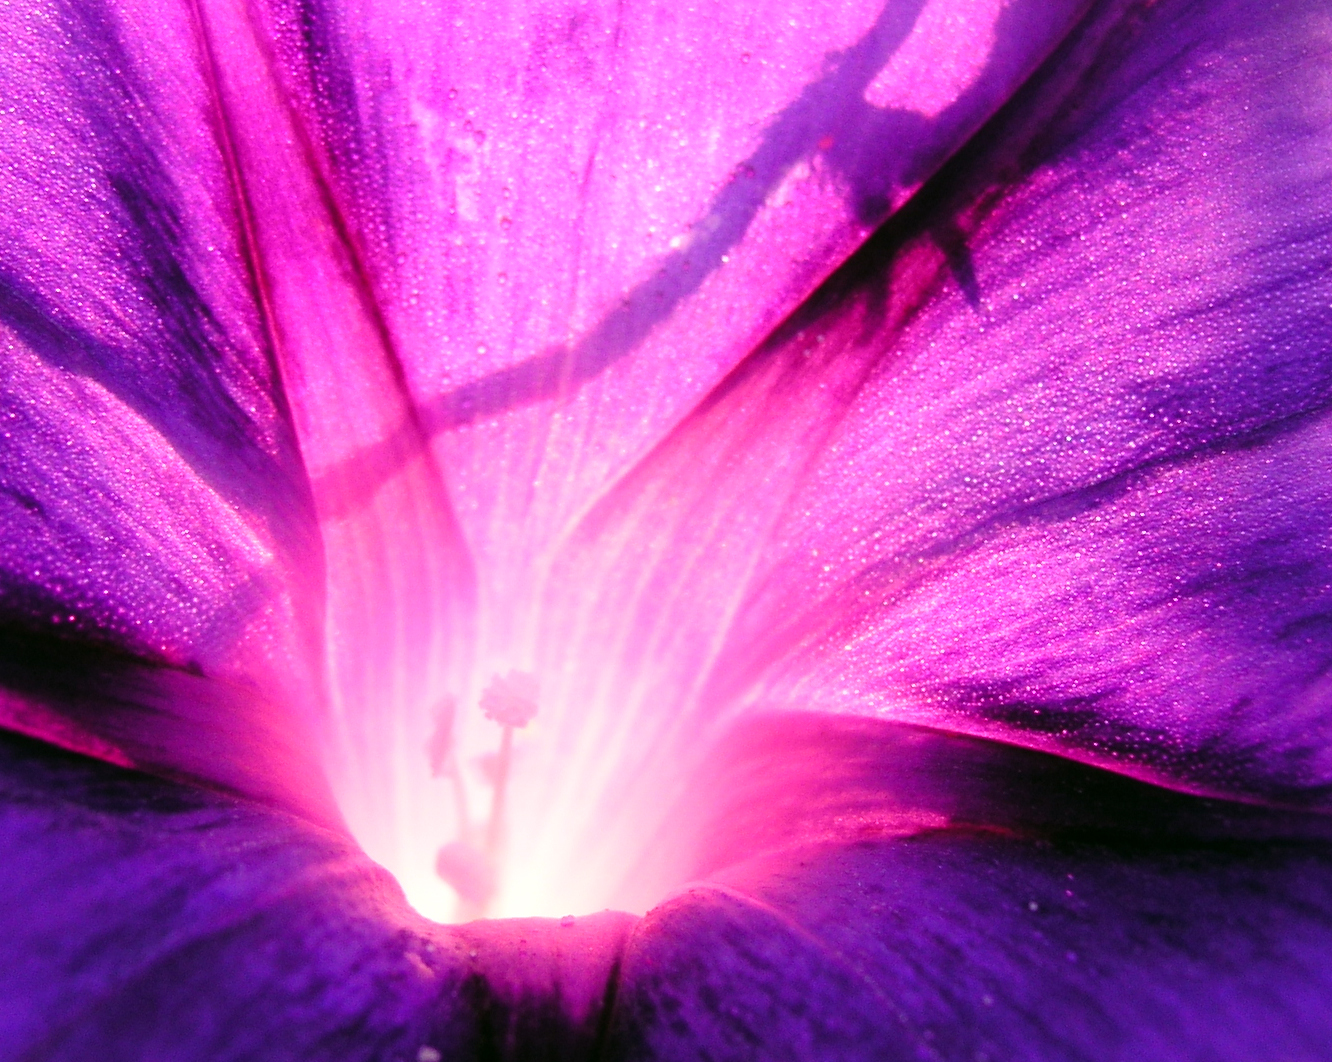 Purple Ipomoea purpurea close-up